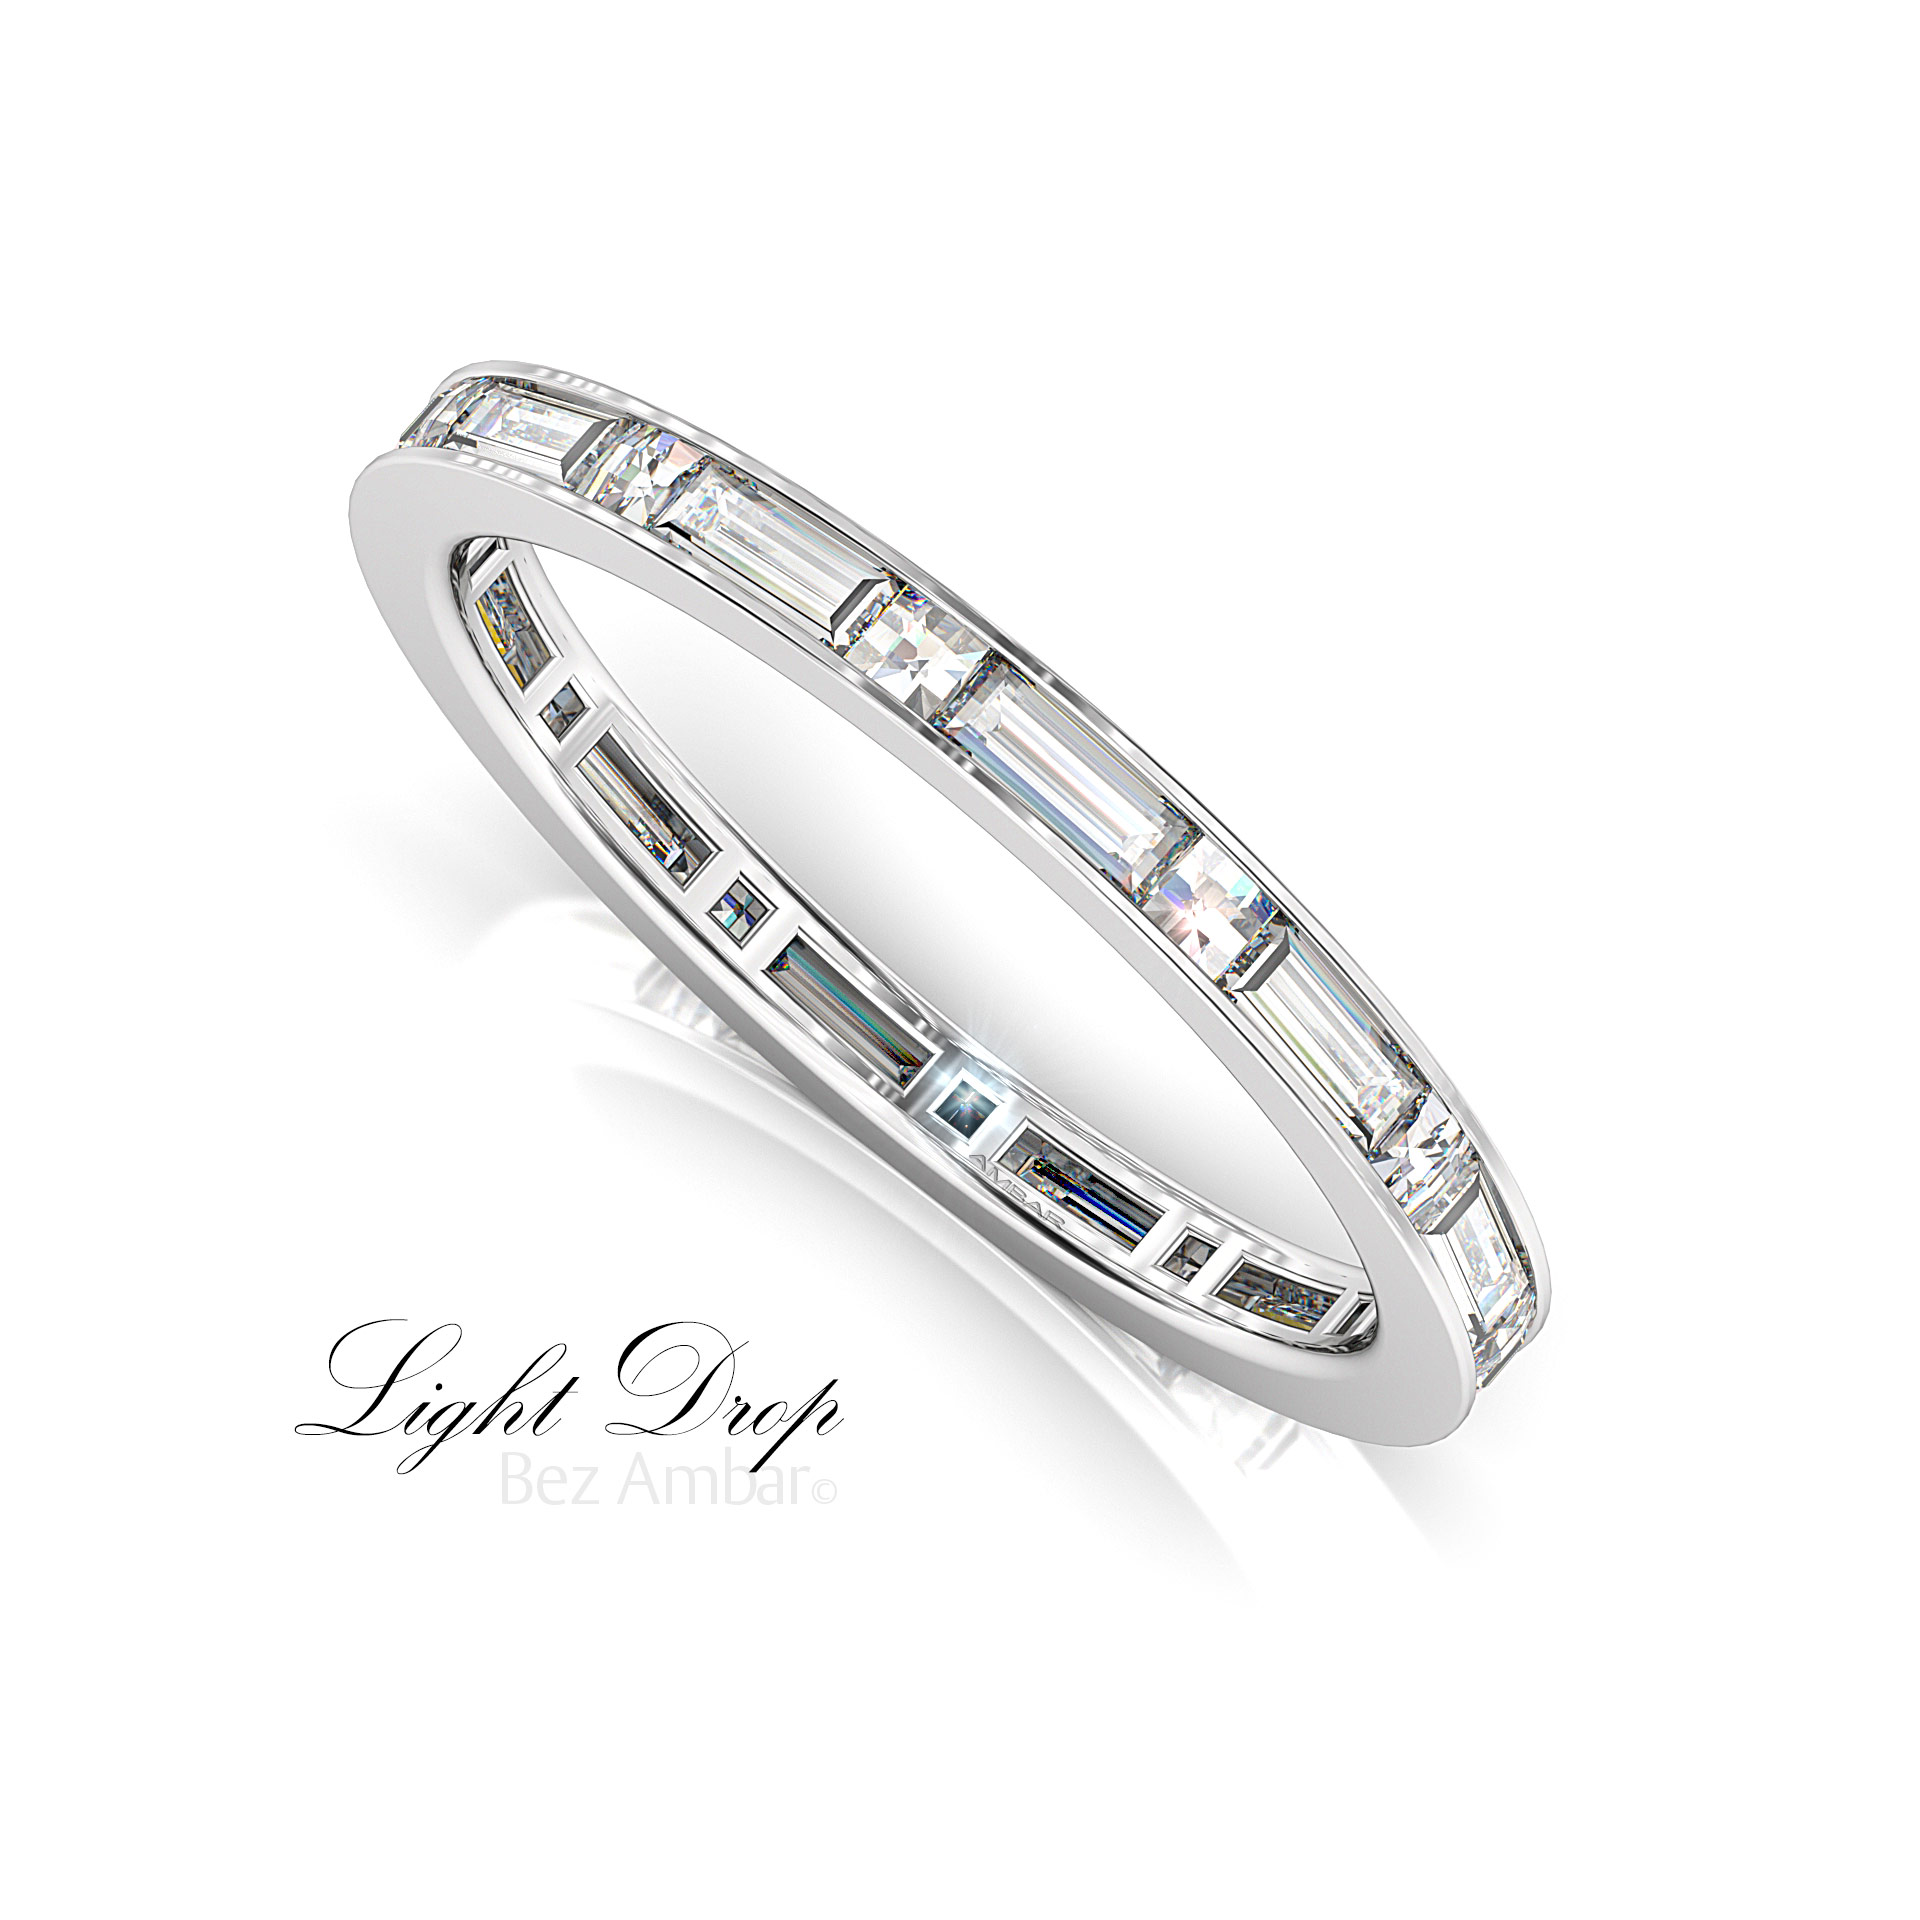 jewelers engagement bands custom eternity platinum shop anniversary rings year rg jewelry band stackables